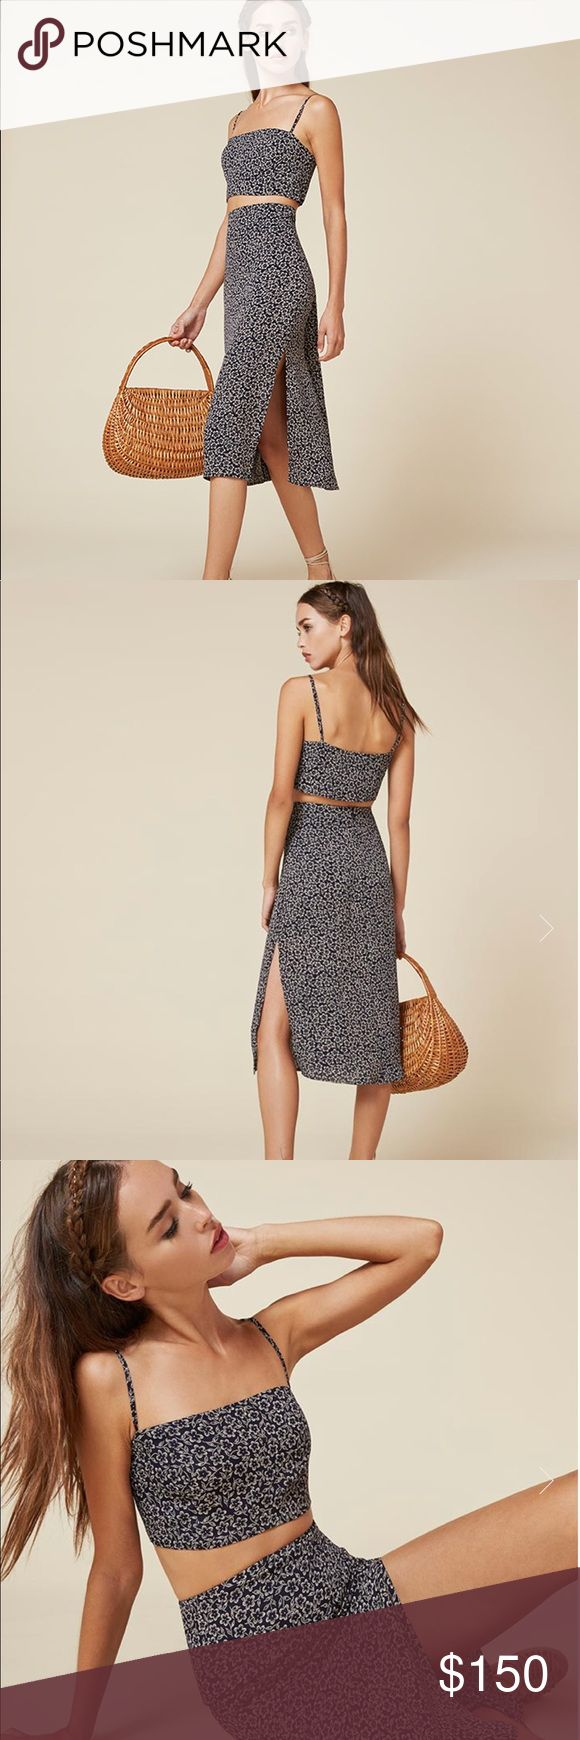 Reformation Ace Two Piece Better together. This is a two piece set with a cropped top and a slim fitting, straight skirt. - Adjustable straps- Hits below knee- Slim fit skirt- Straight neck- Very cropped Reformation Dresses